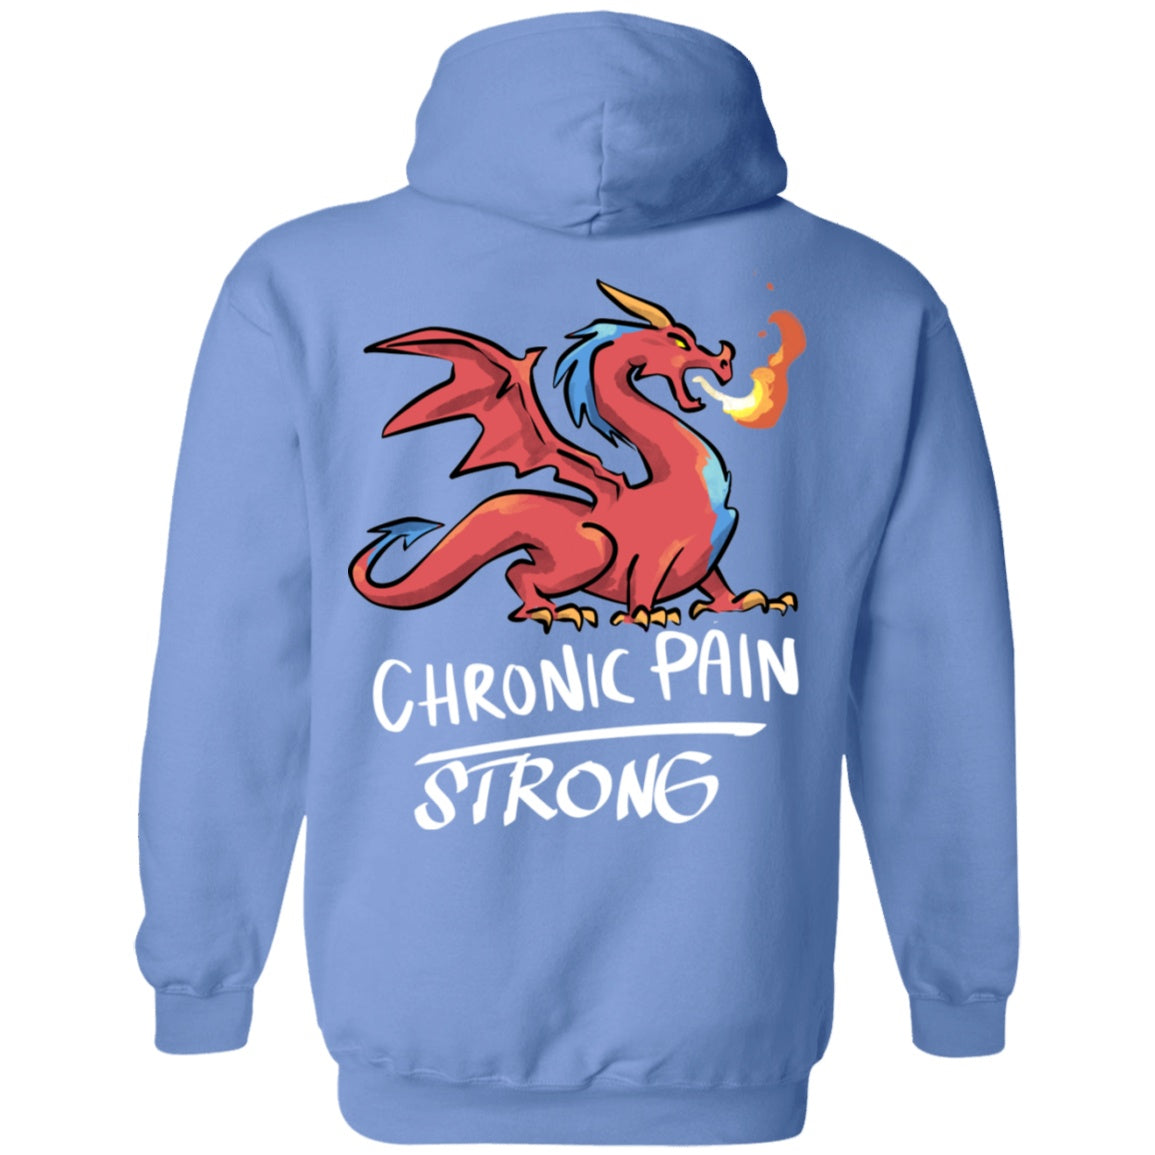 Chronic Pain Strong Dragon Pullover Hoodie 8 oz. - The Unchargeables